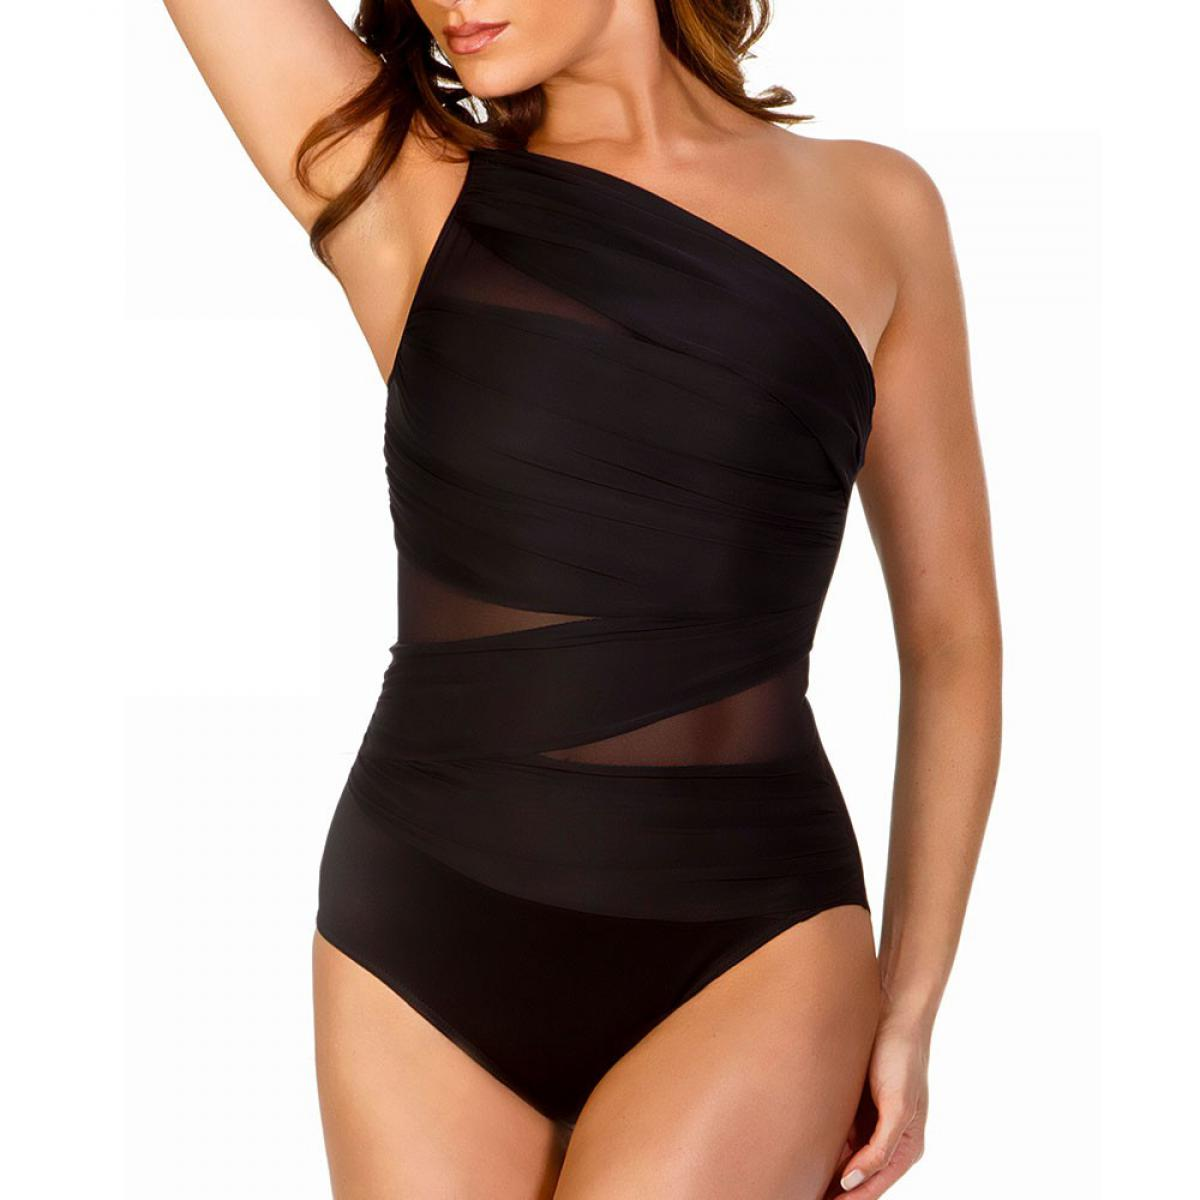 maillot de bain 1 pi ce brassi re jena blk miraclesuit. Black Bedroom Furniture Sets. Home Design Ideas